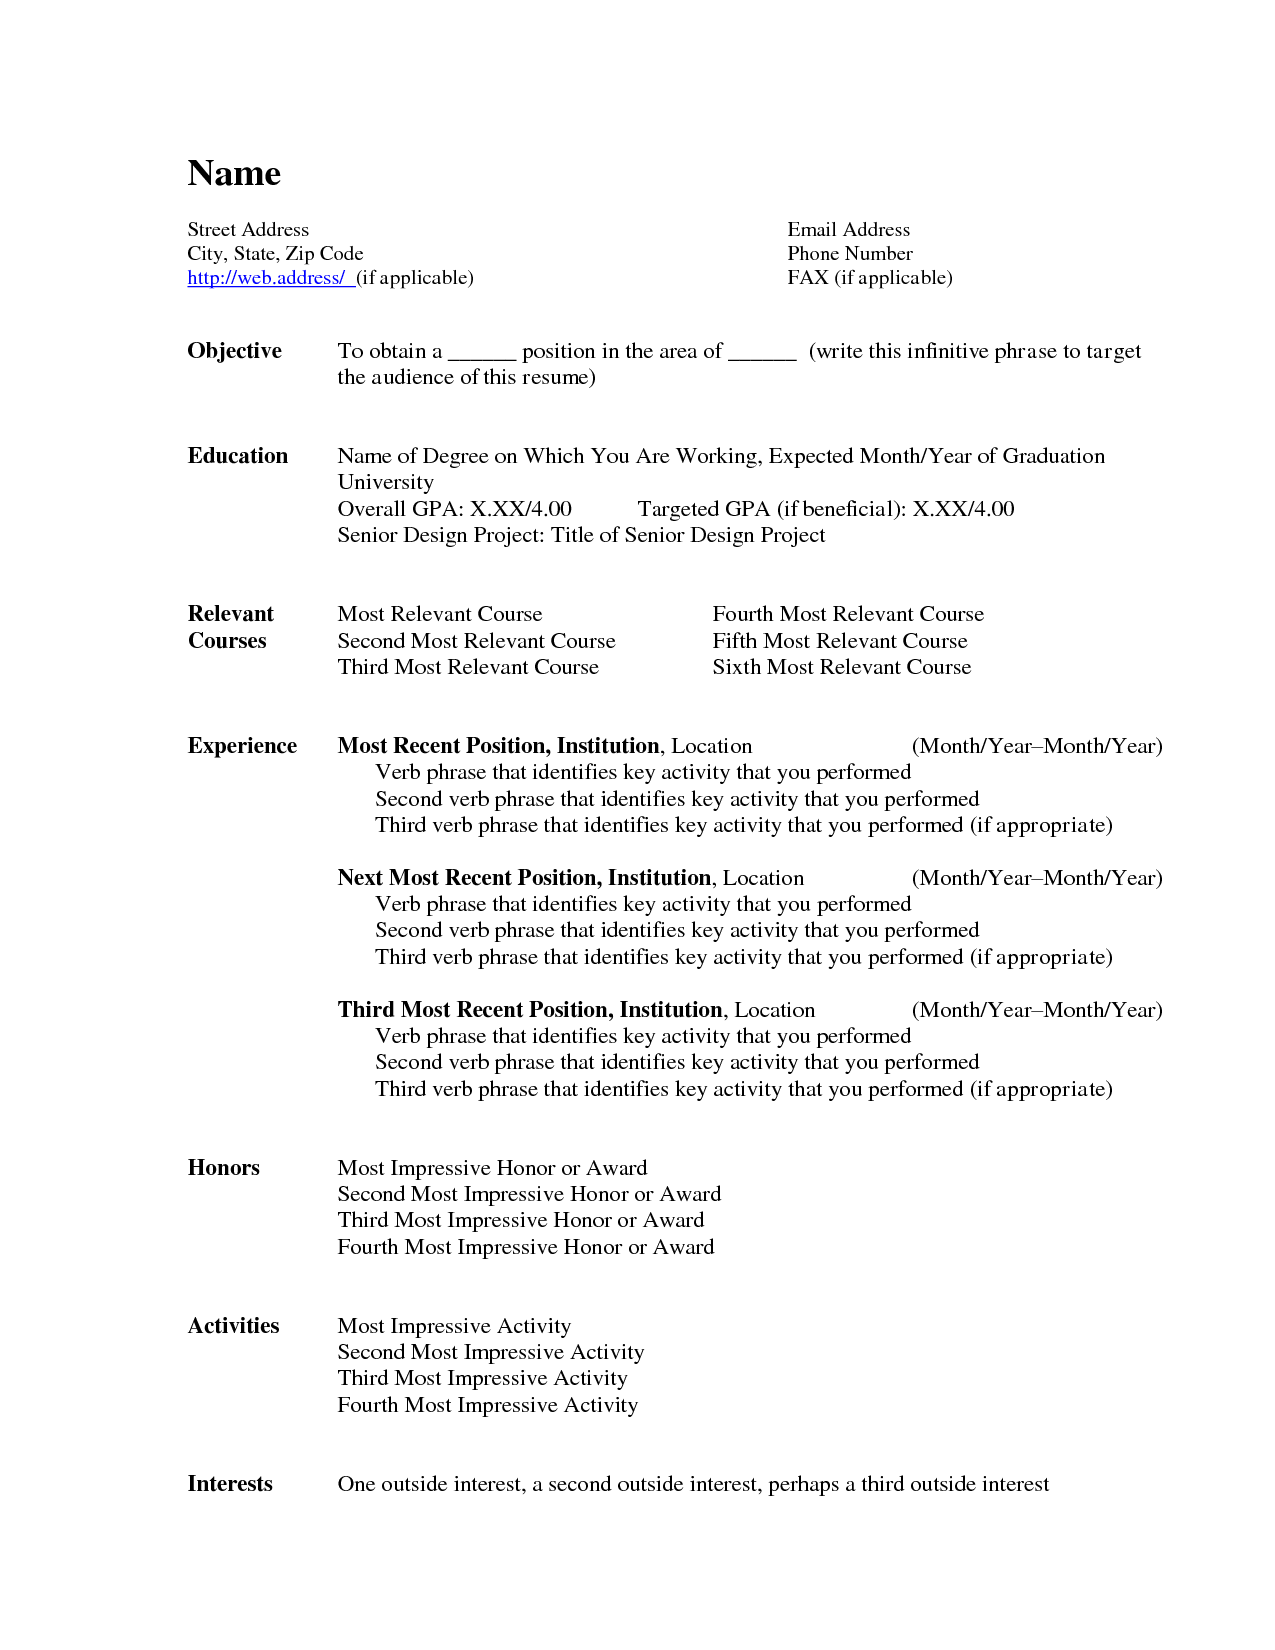 resume format microsoft word - Resume Formats In Word